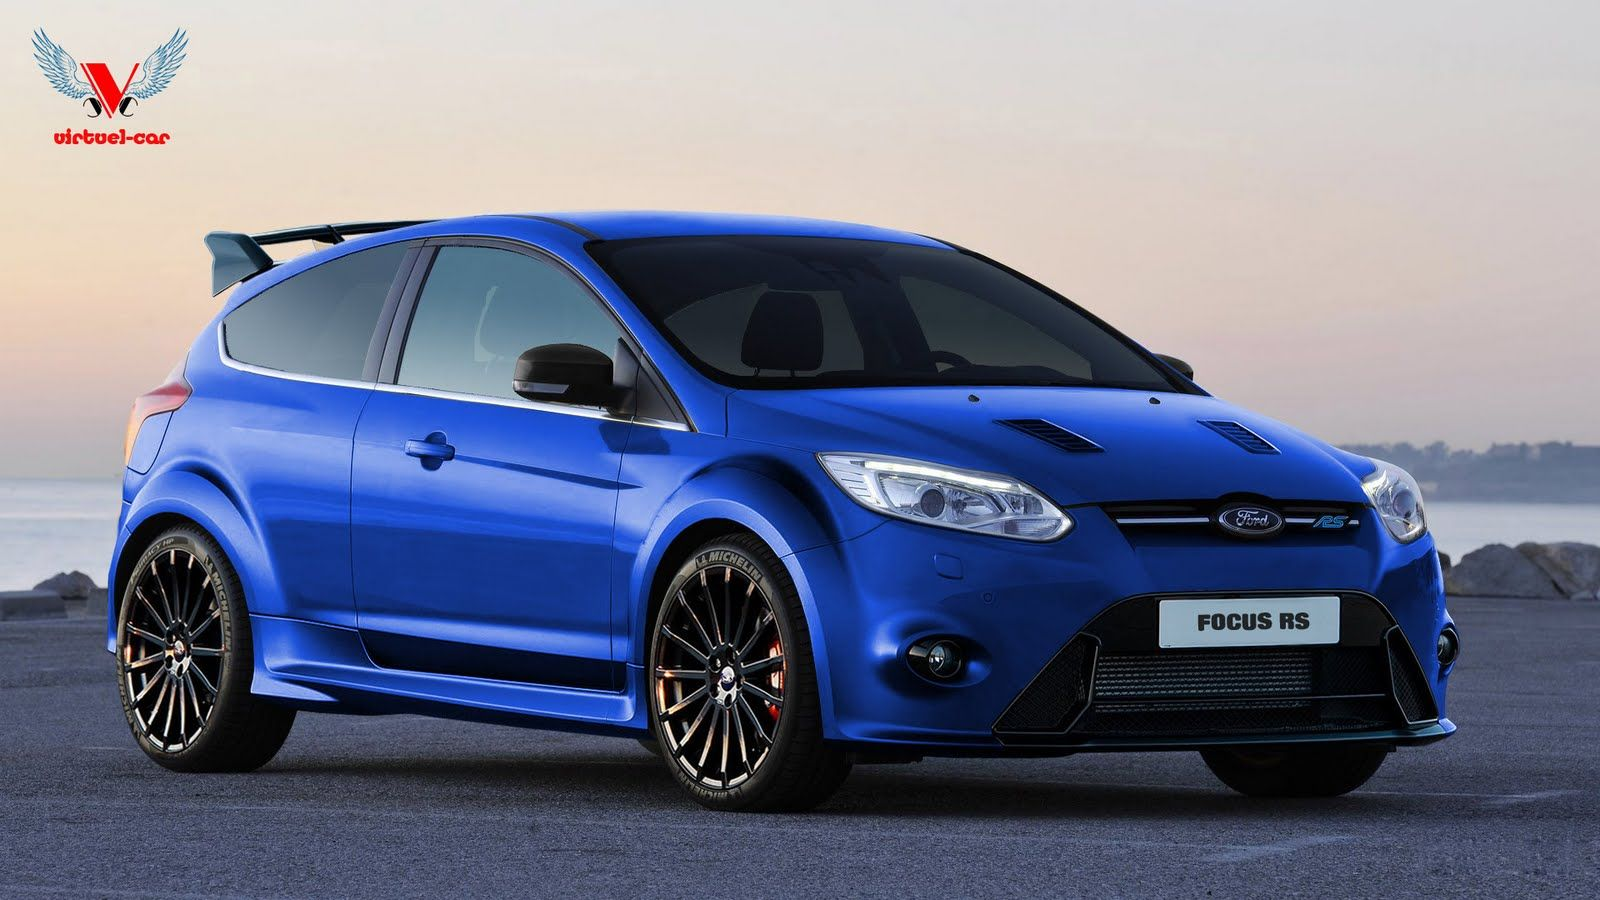 Ford Focus Rs Fastmotoring Ford Focus Hatchback Ford Focus Rs